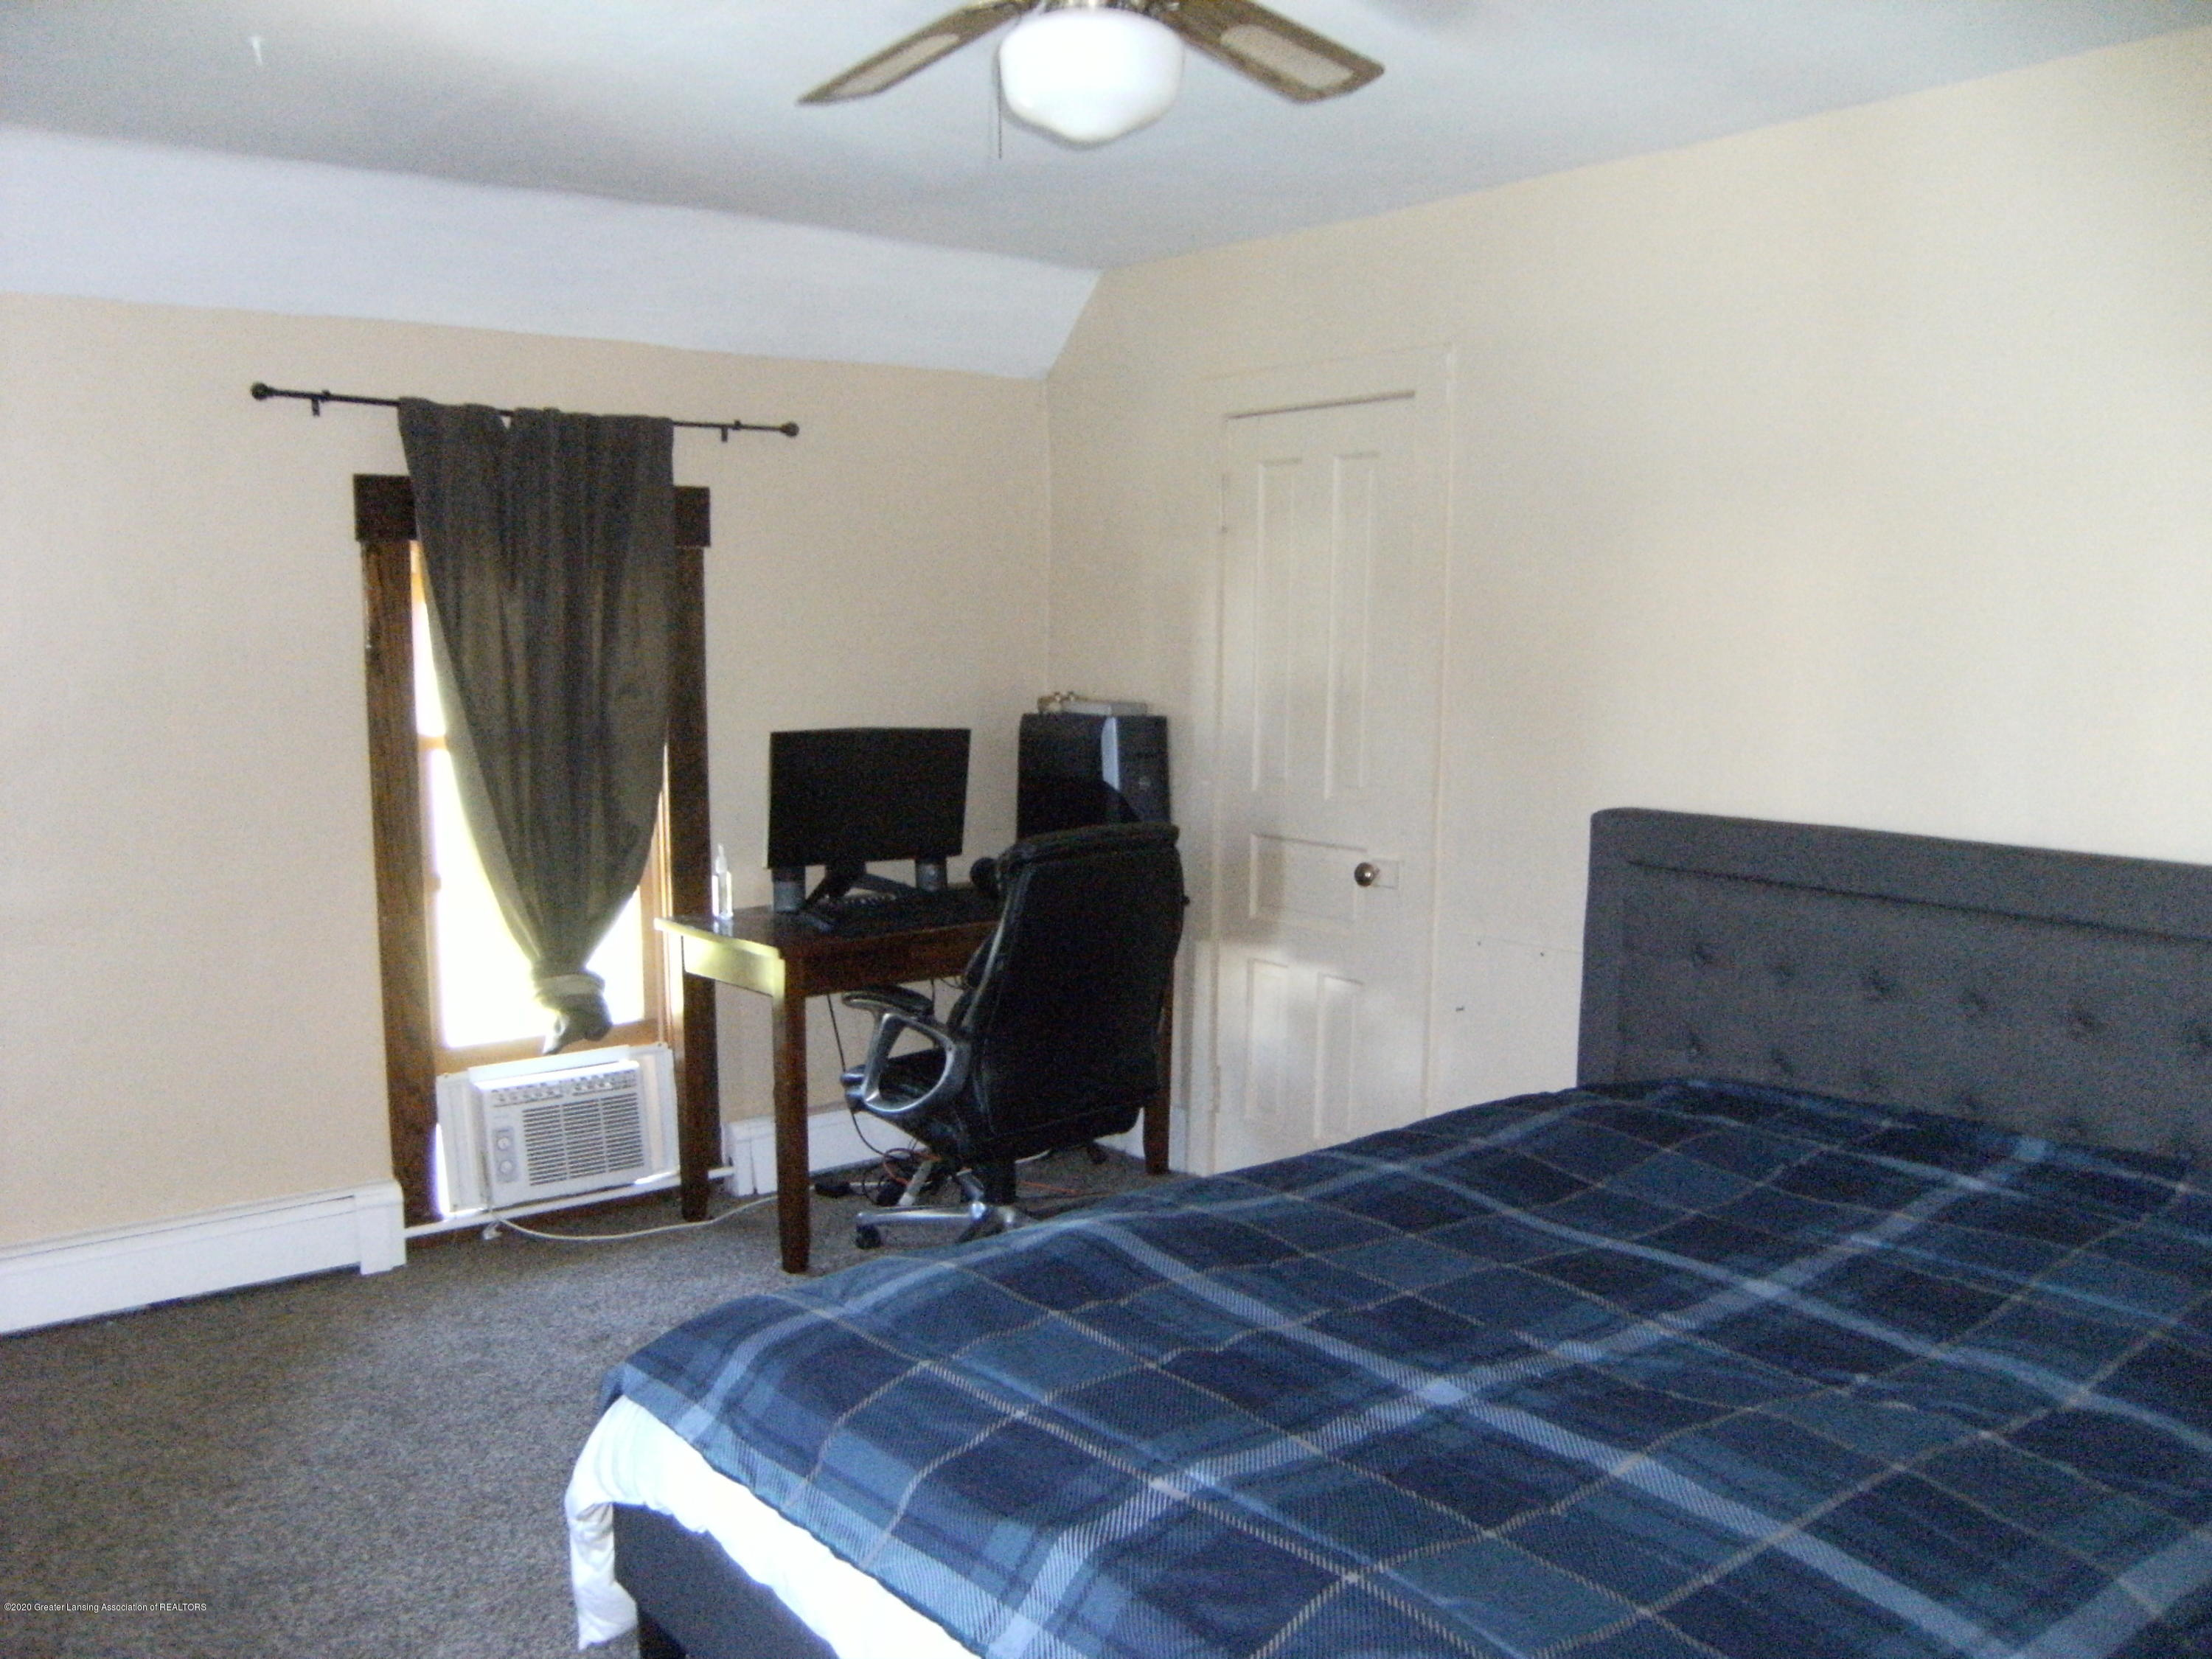 9108 S Krepps Rd - Secondary bedrooms - 24